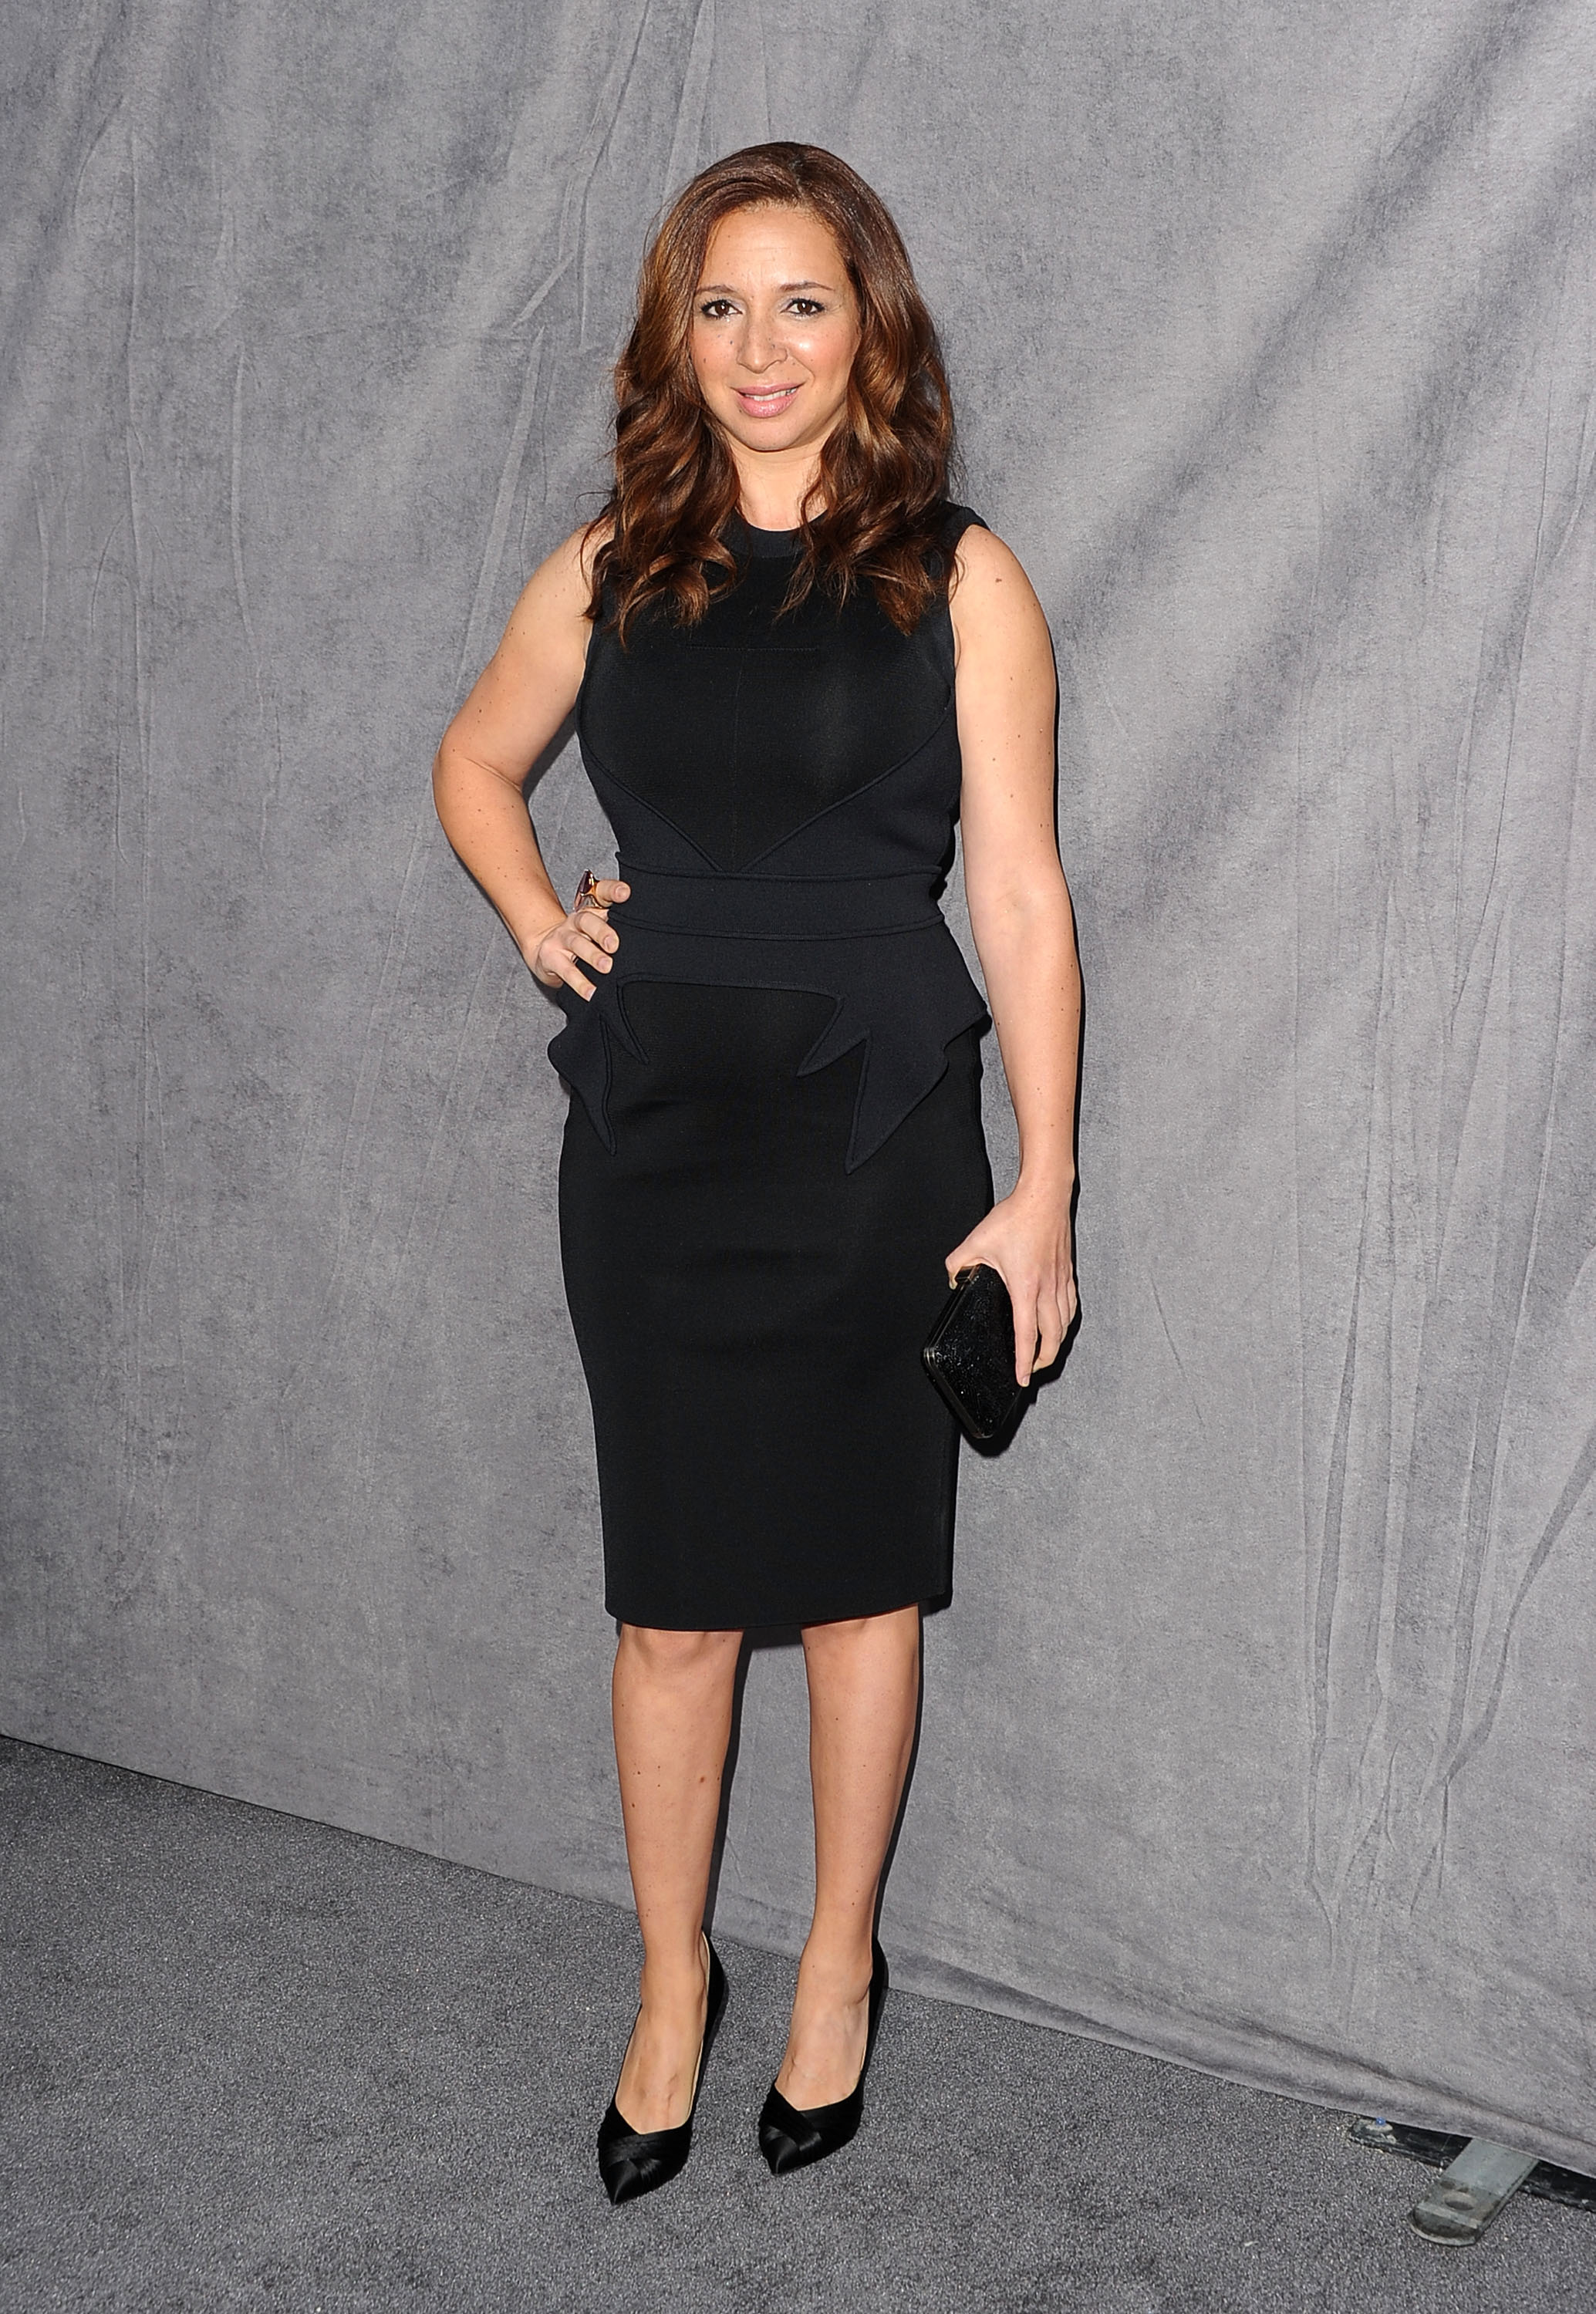 Maya Rudolph had a black dress at the Critics' Choice Movie Awards.